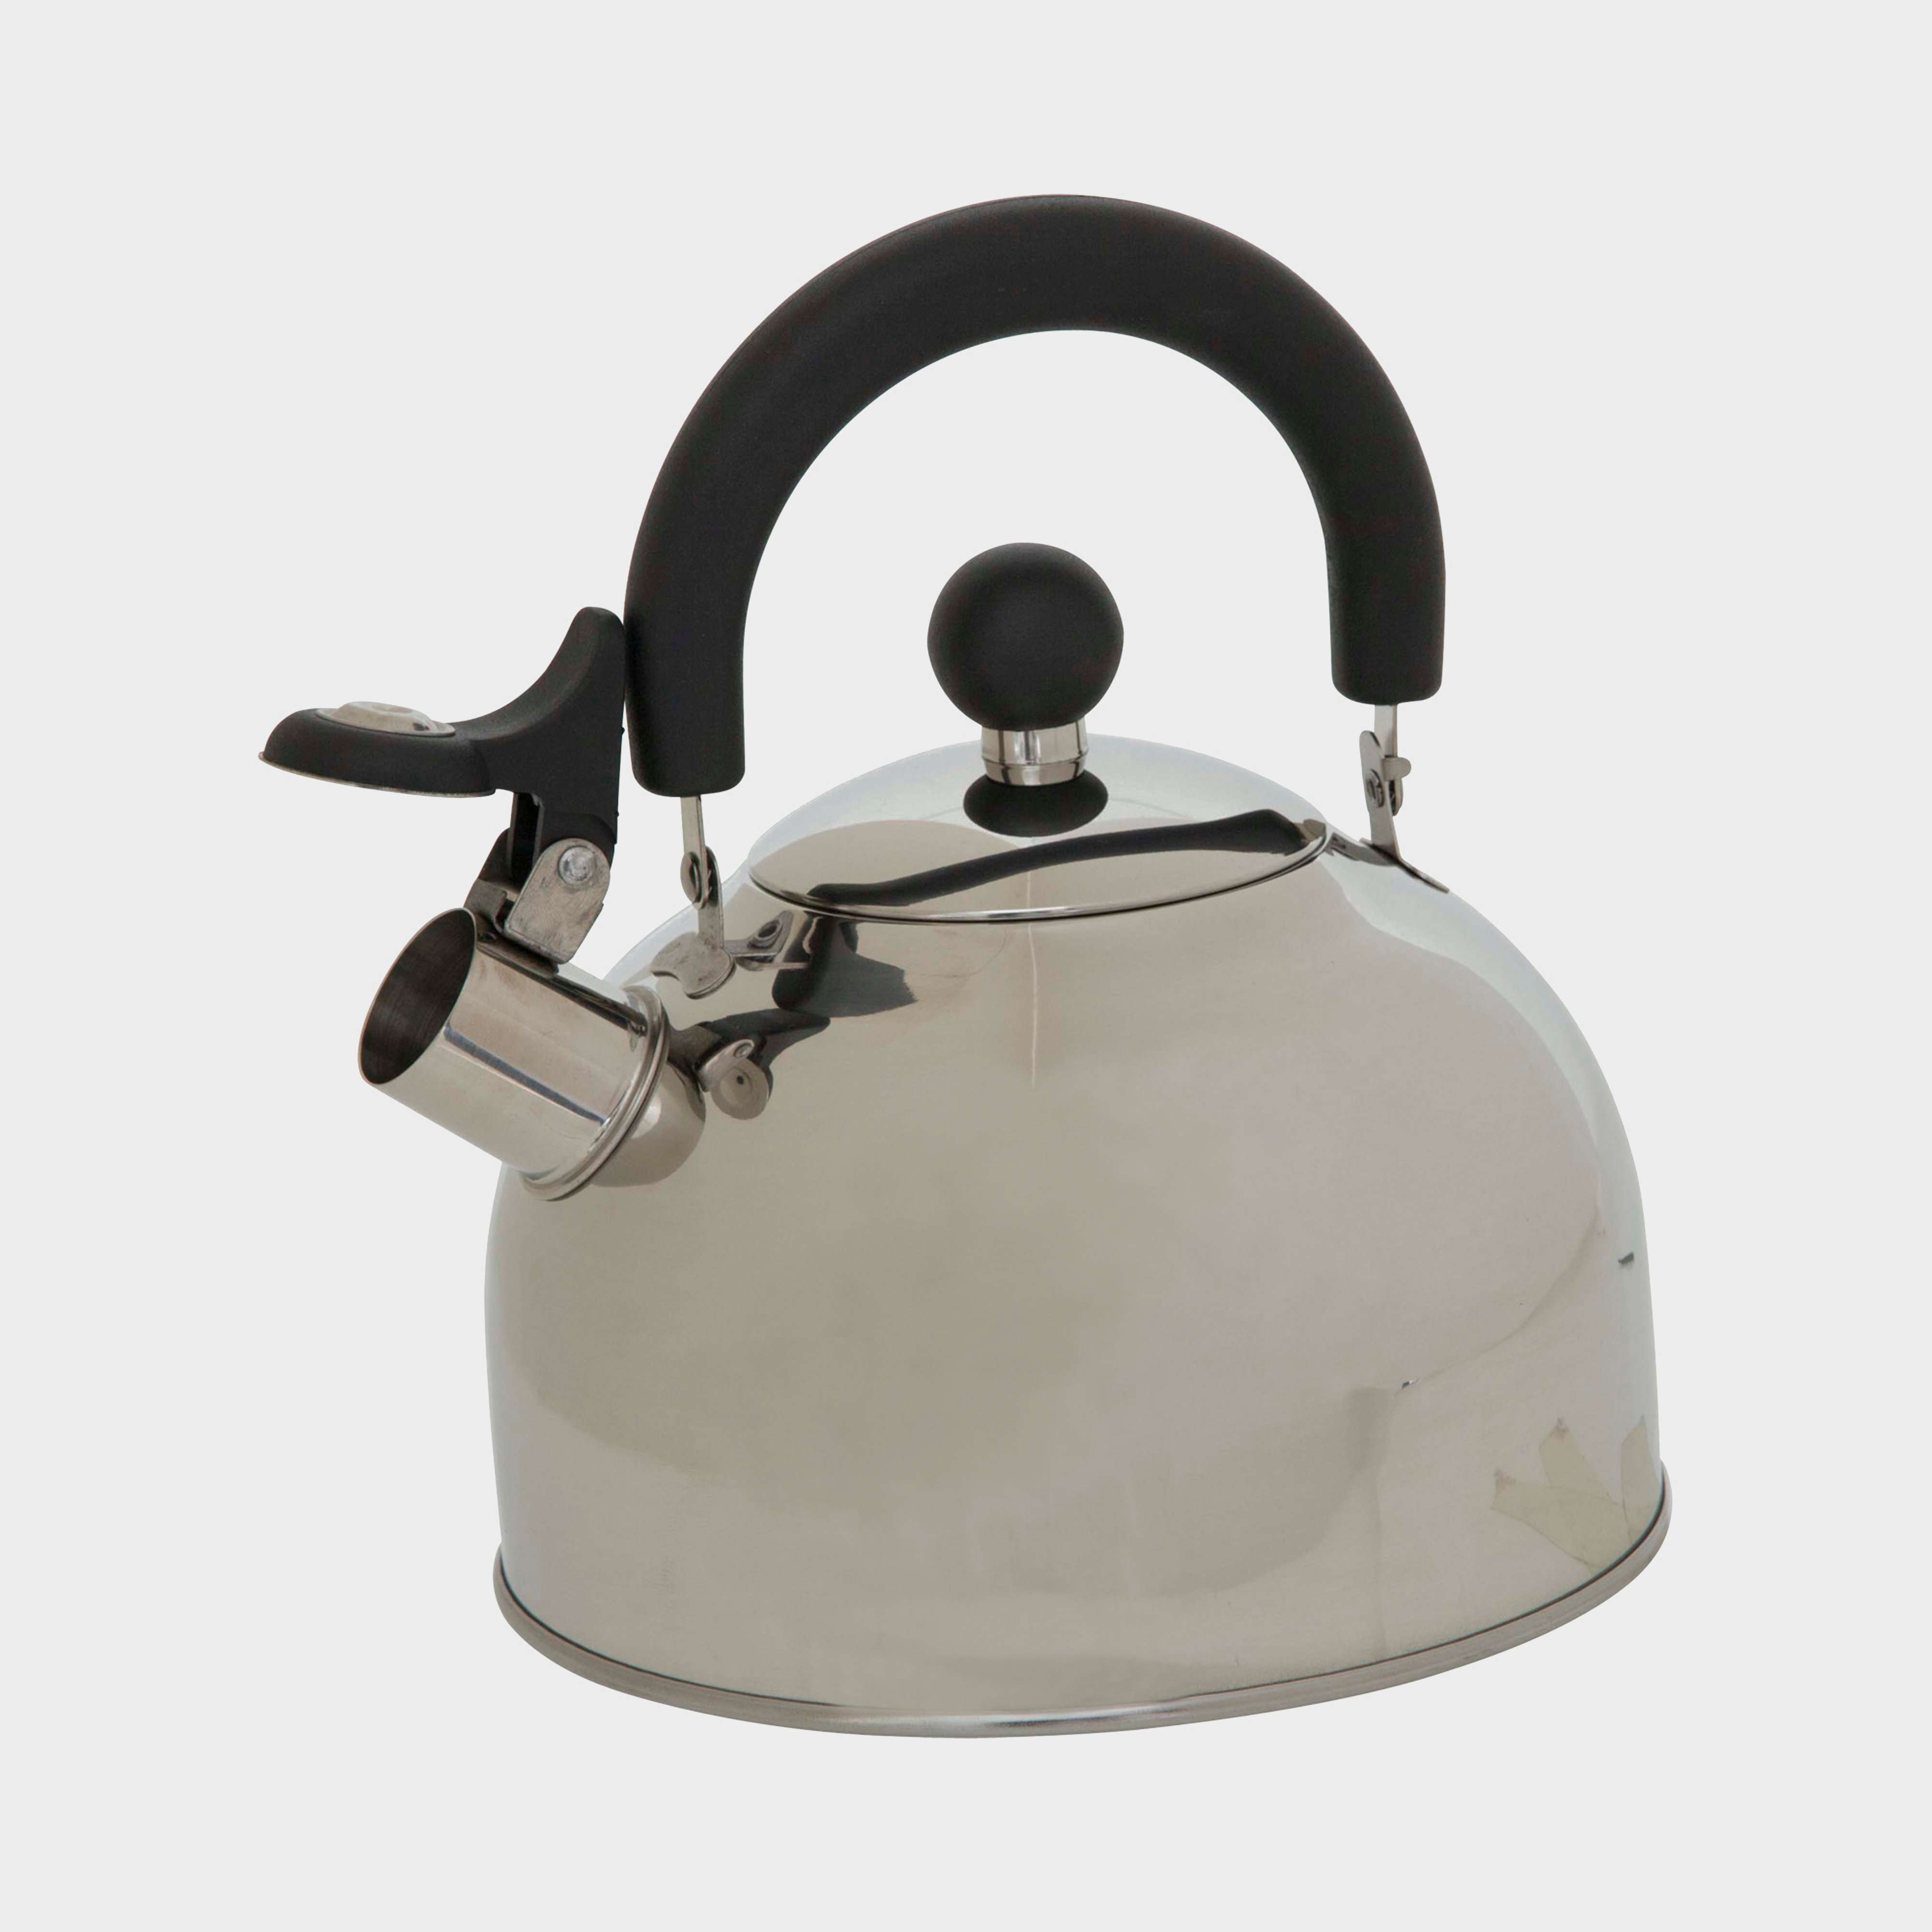 VANGO 2 Litre Camping Kettle